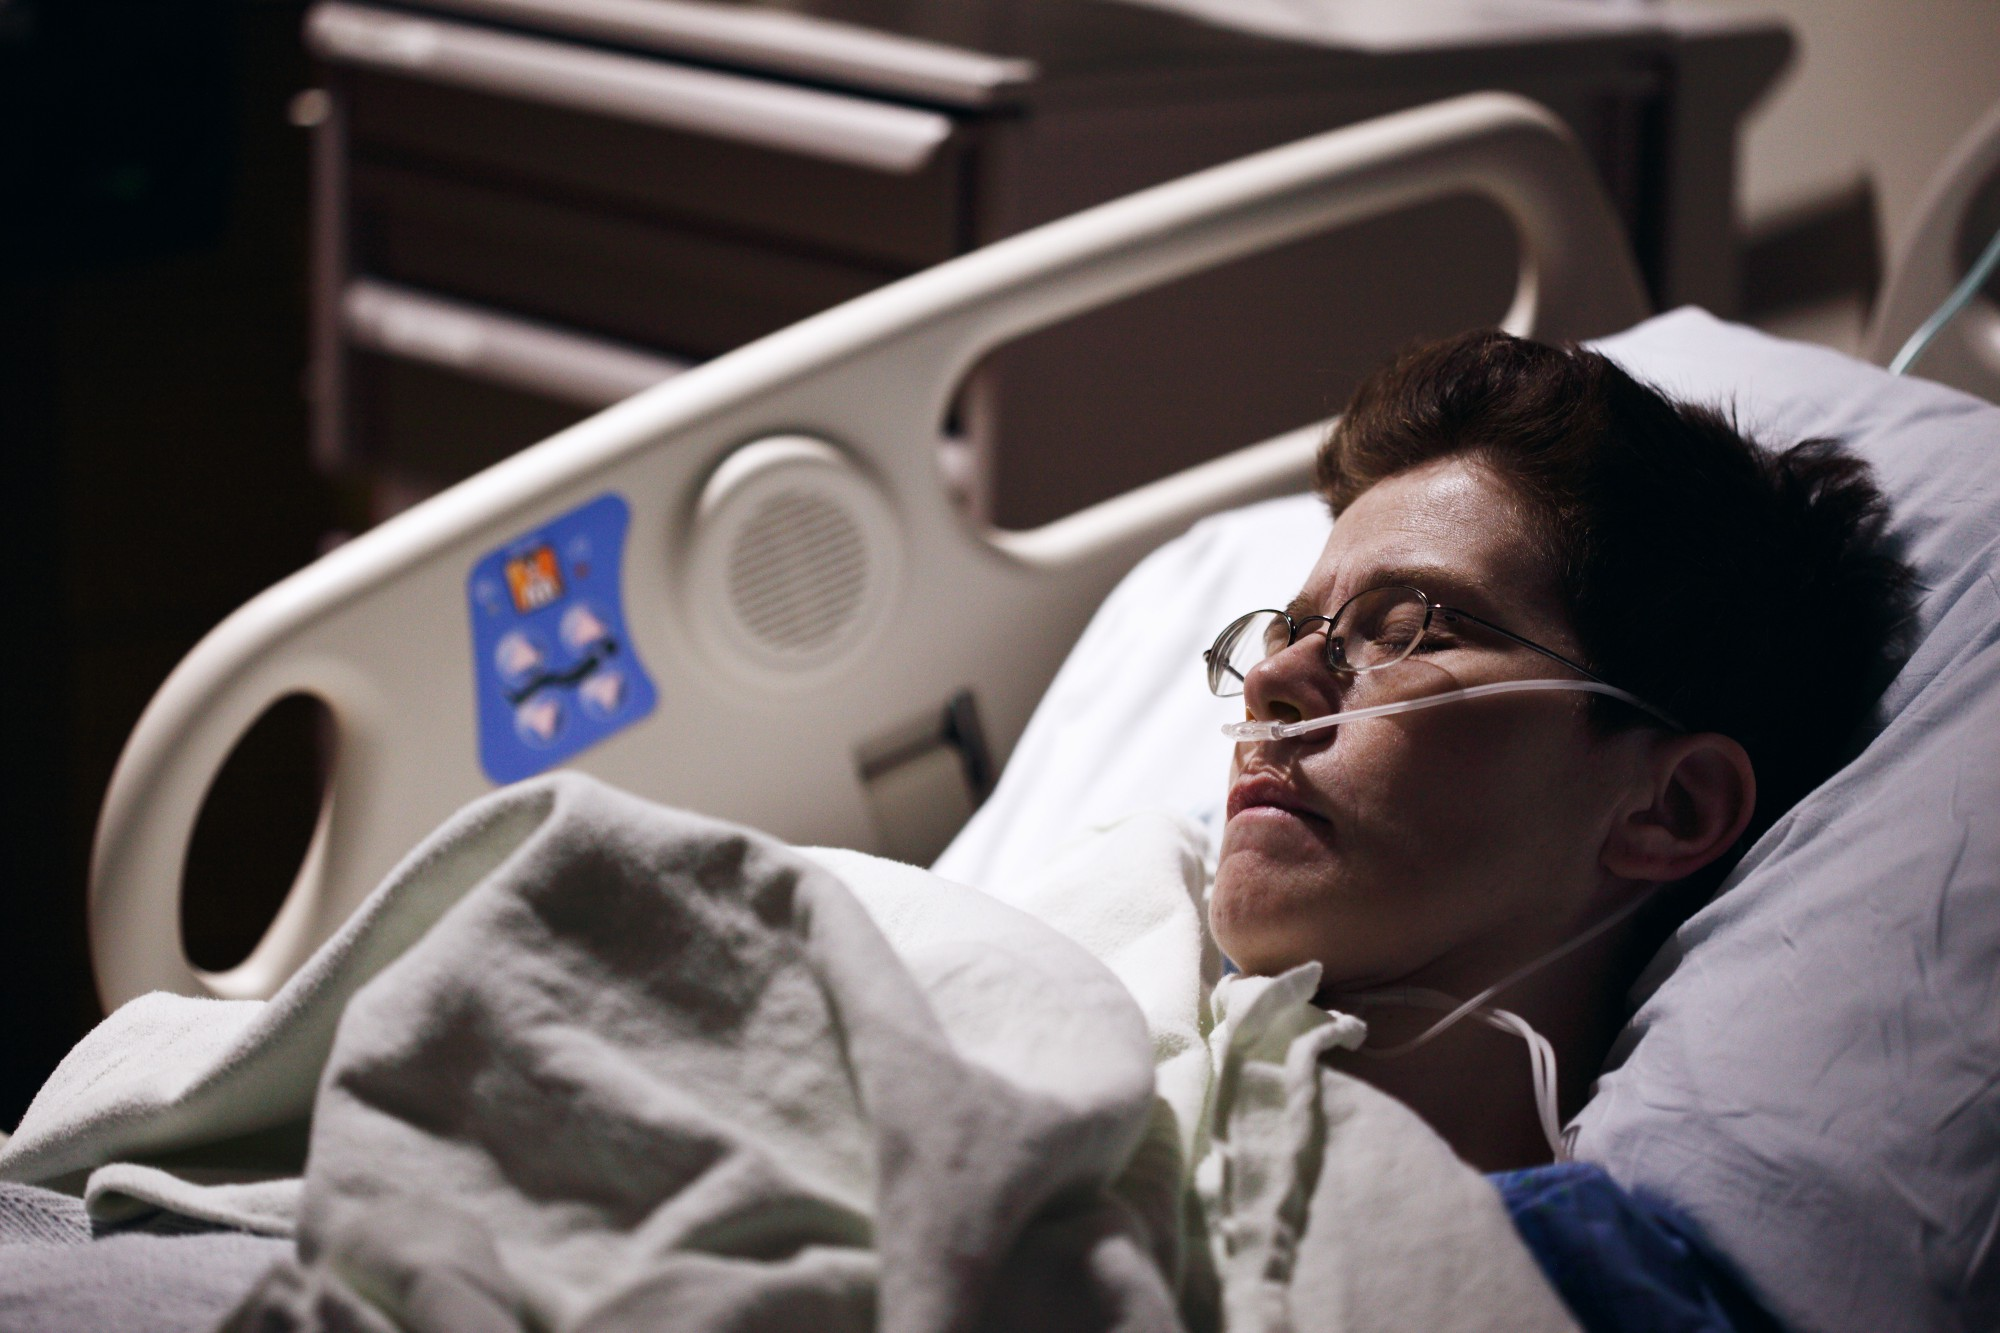 What I Learned From a Bedridden Cancer Patient About Life